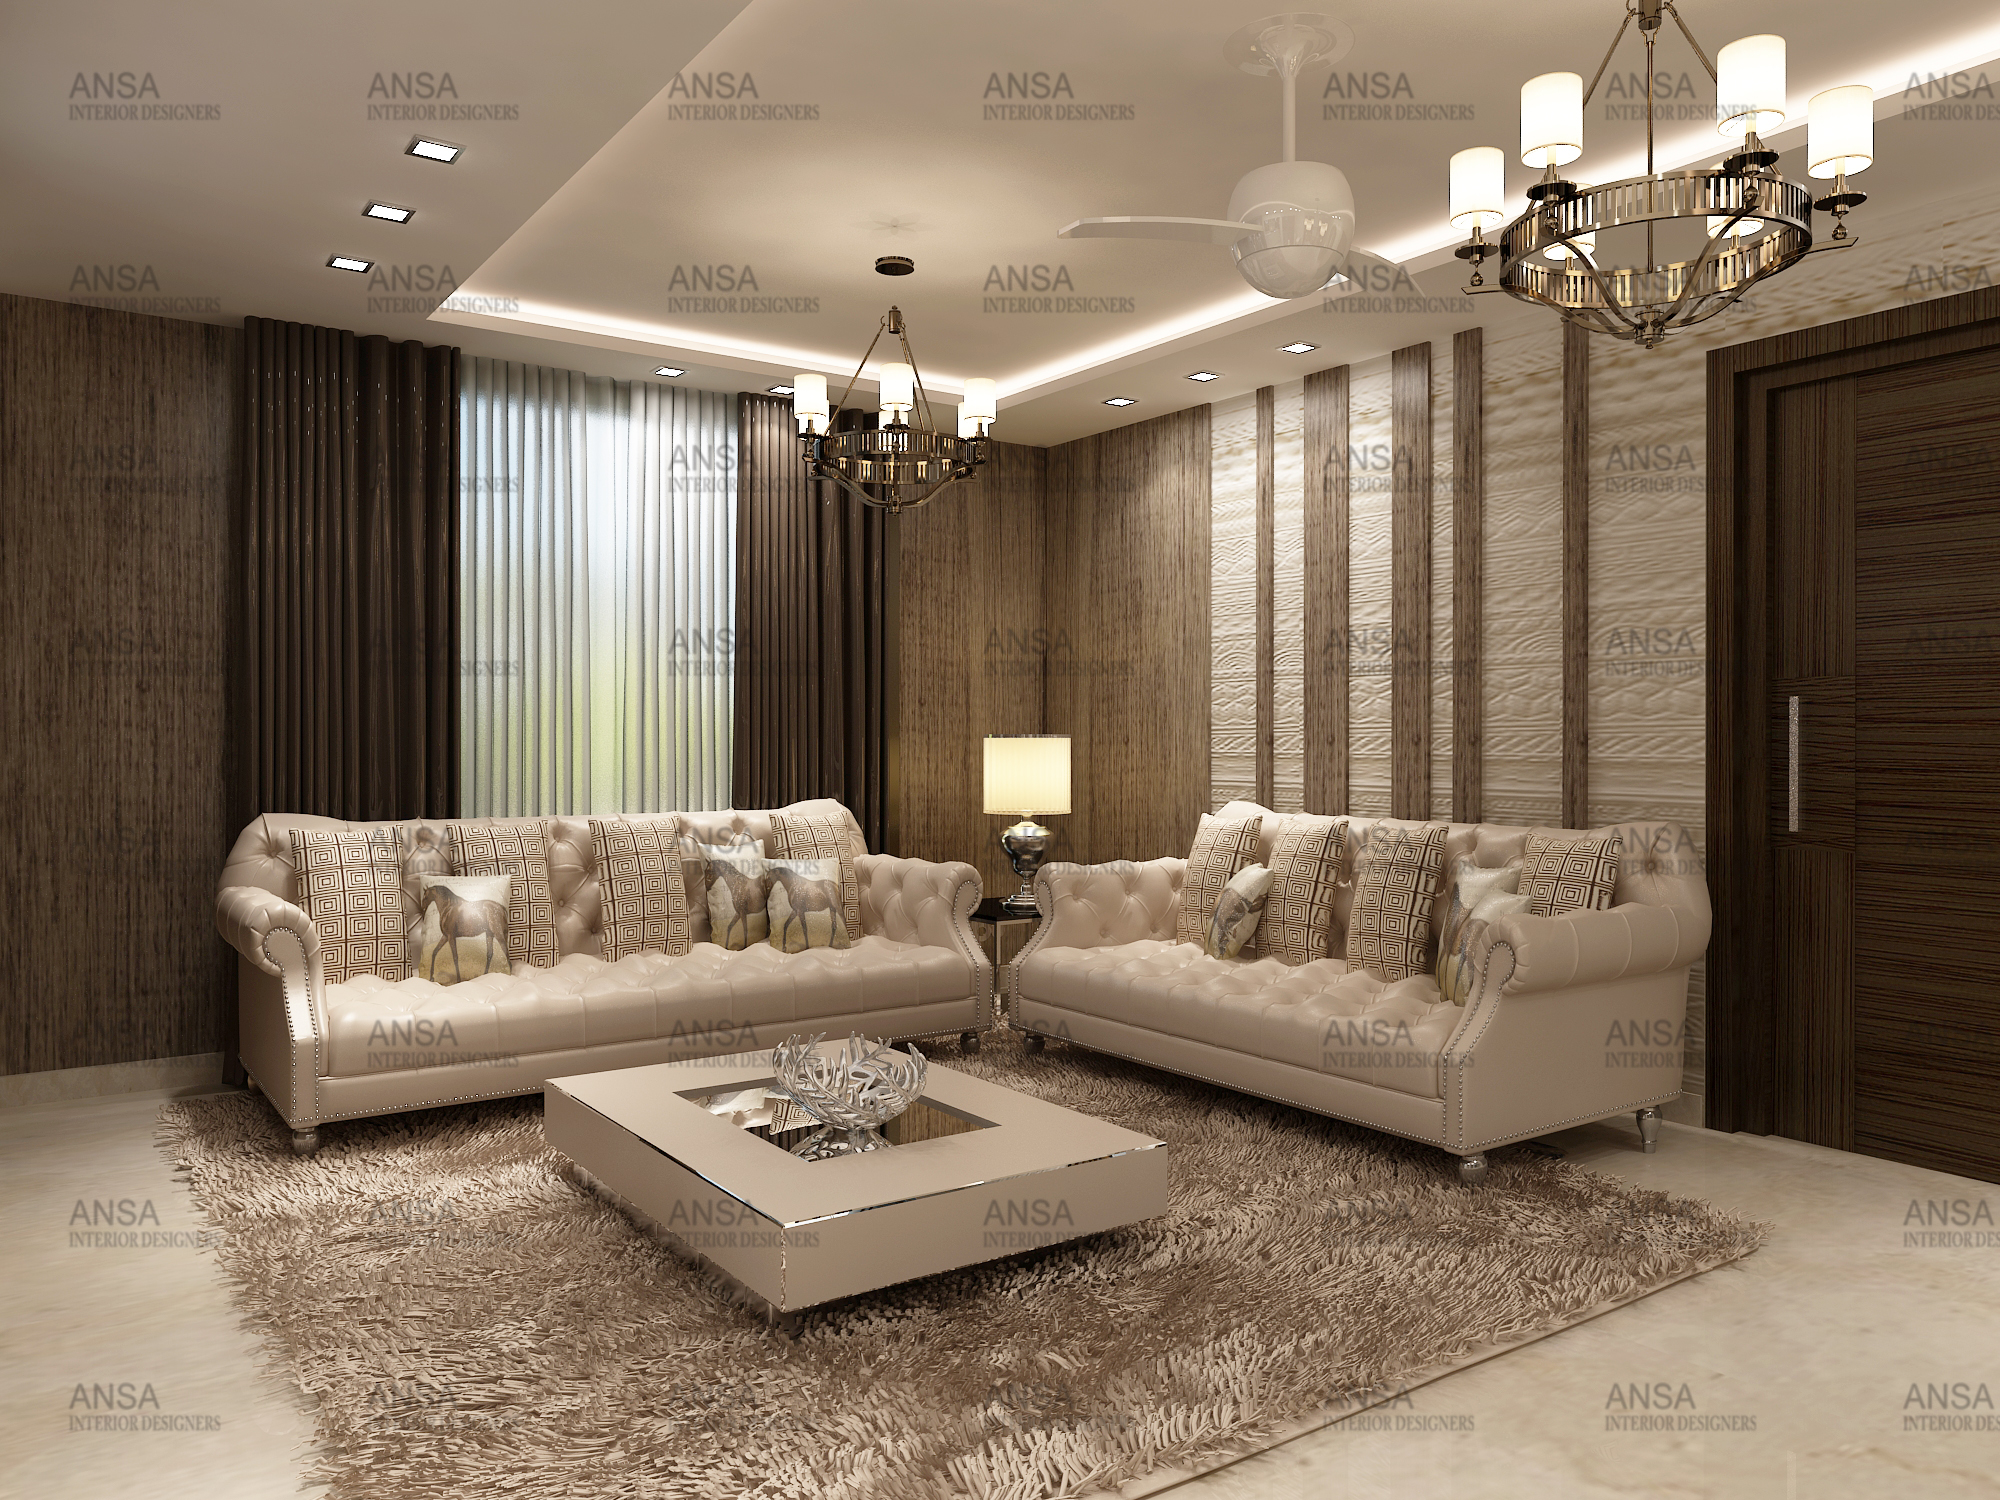 Home Furnishing For Winters (3)